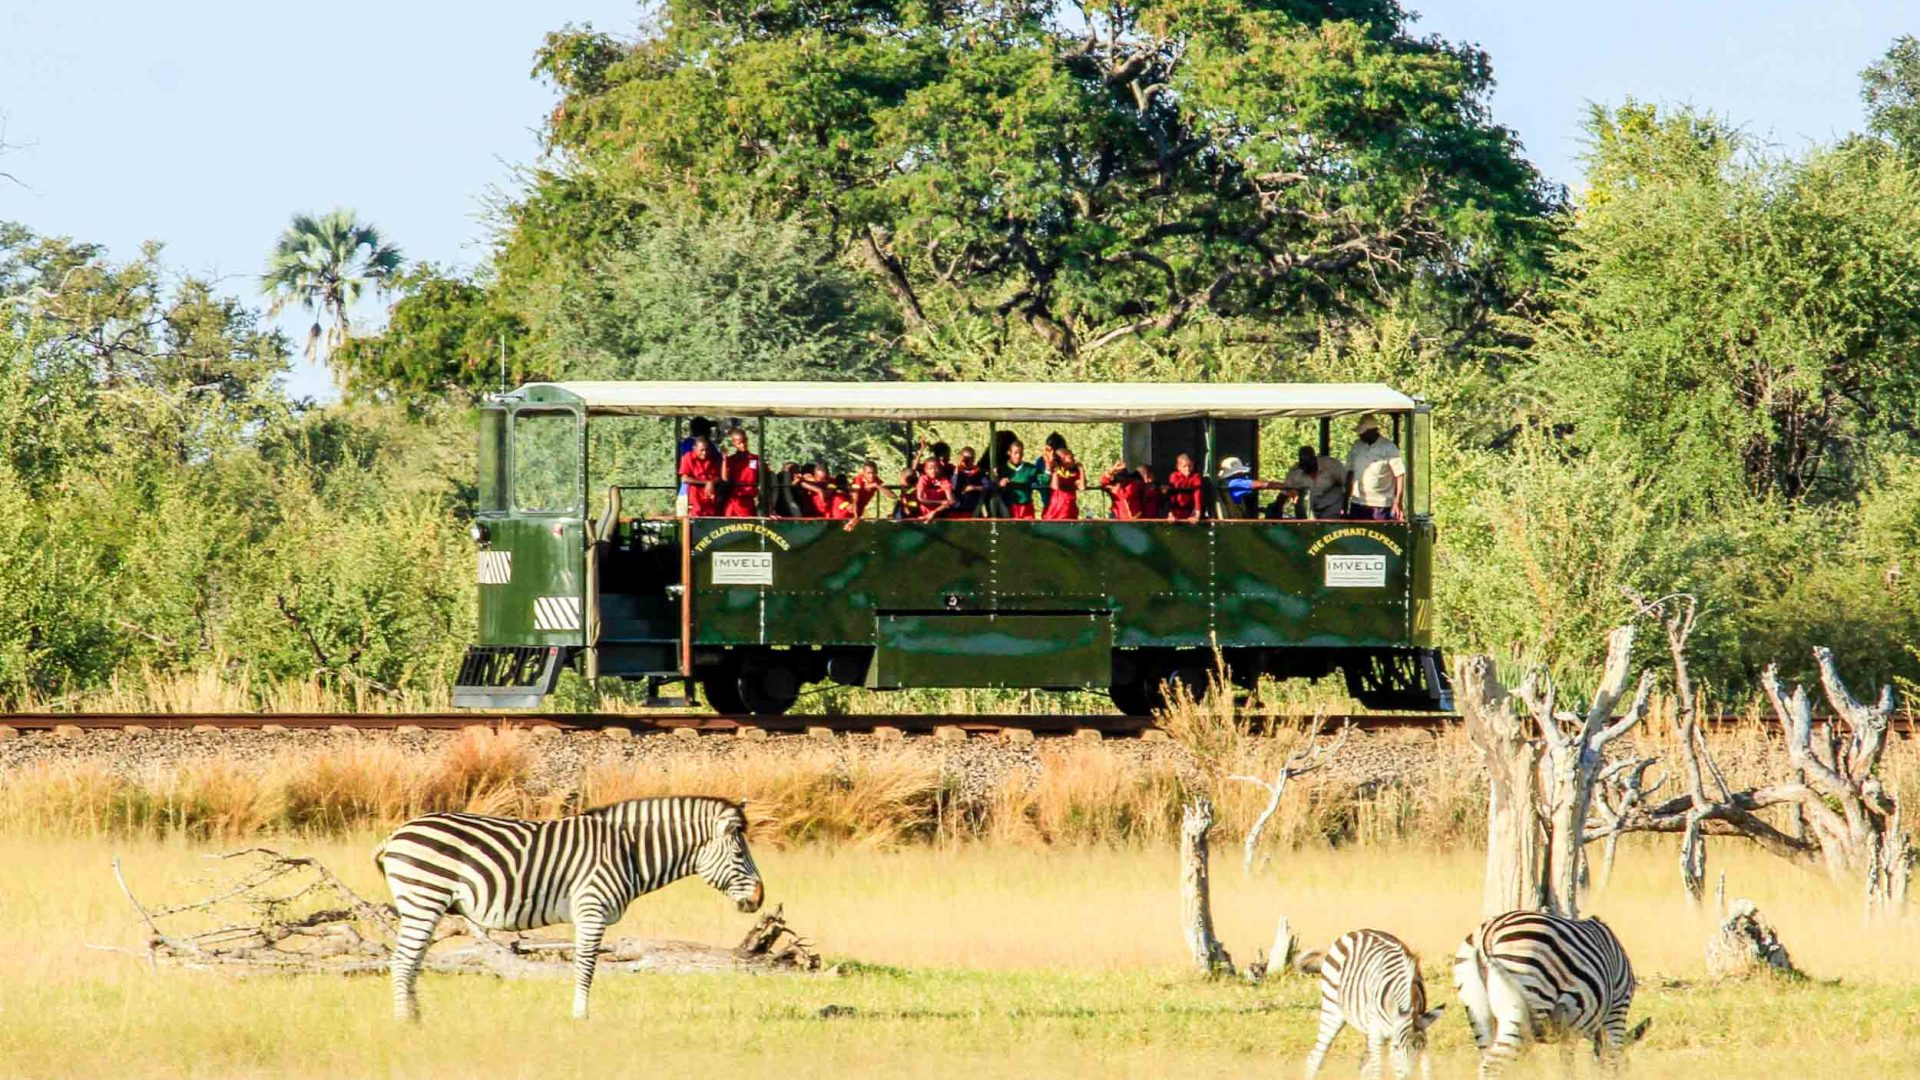 Tourists on the Elephant Express spot zebras in Hwange National Park, Zimbabwe.